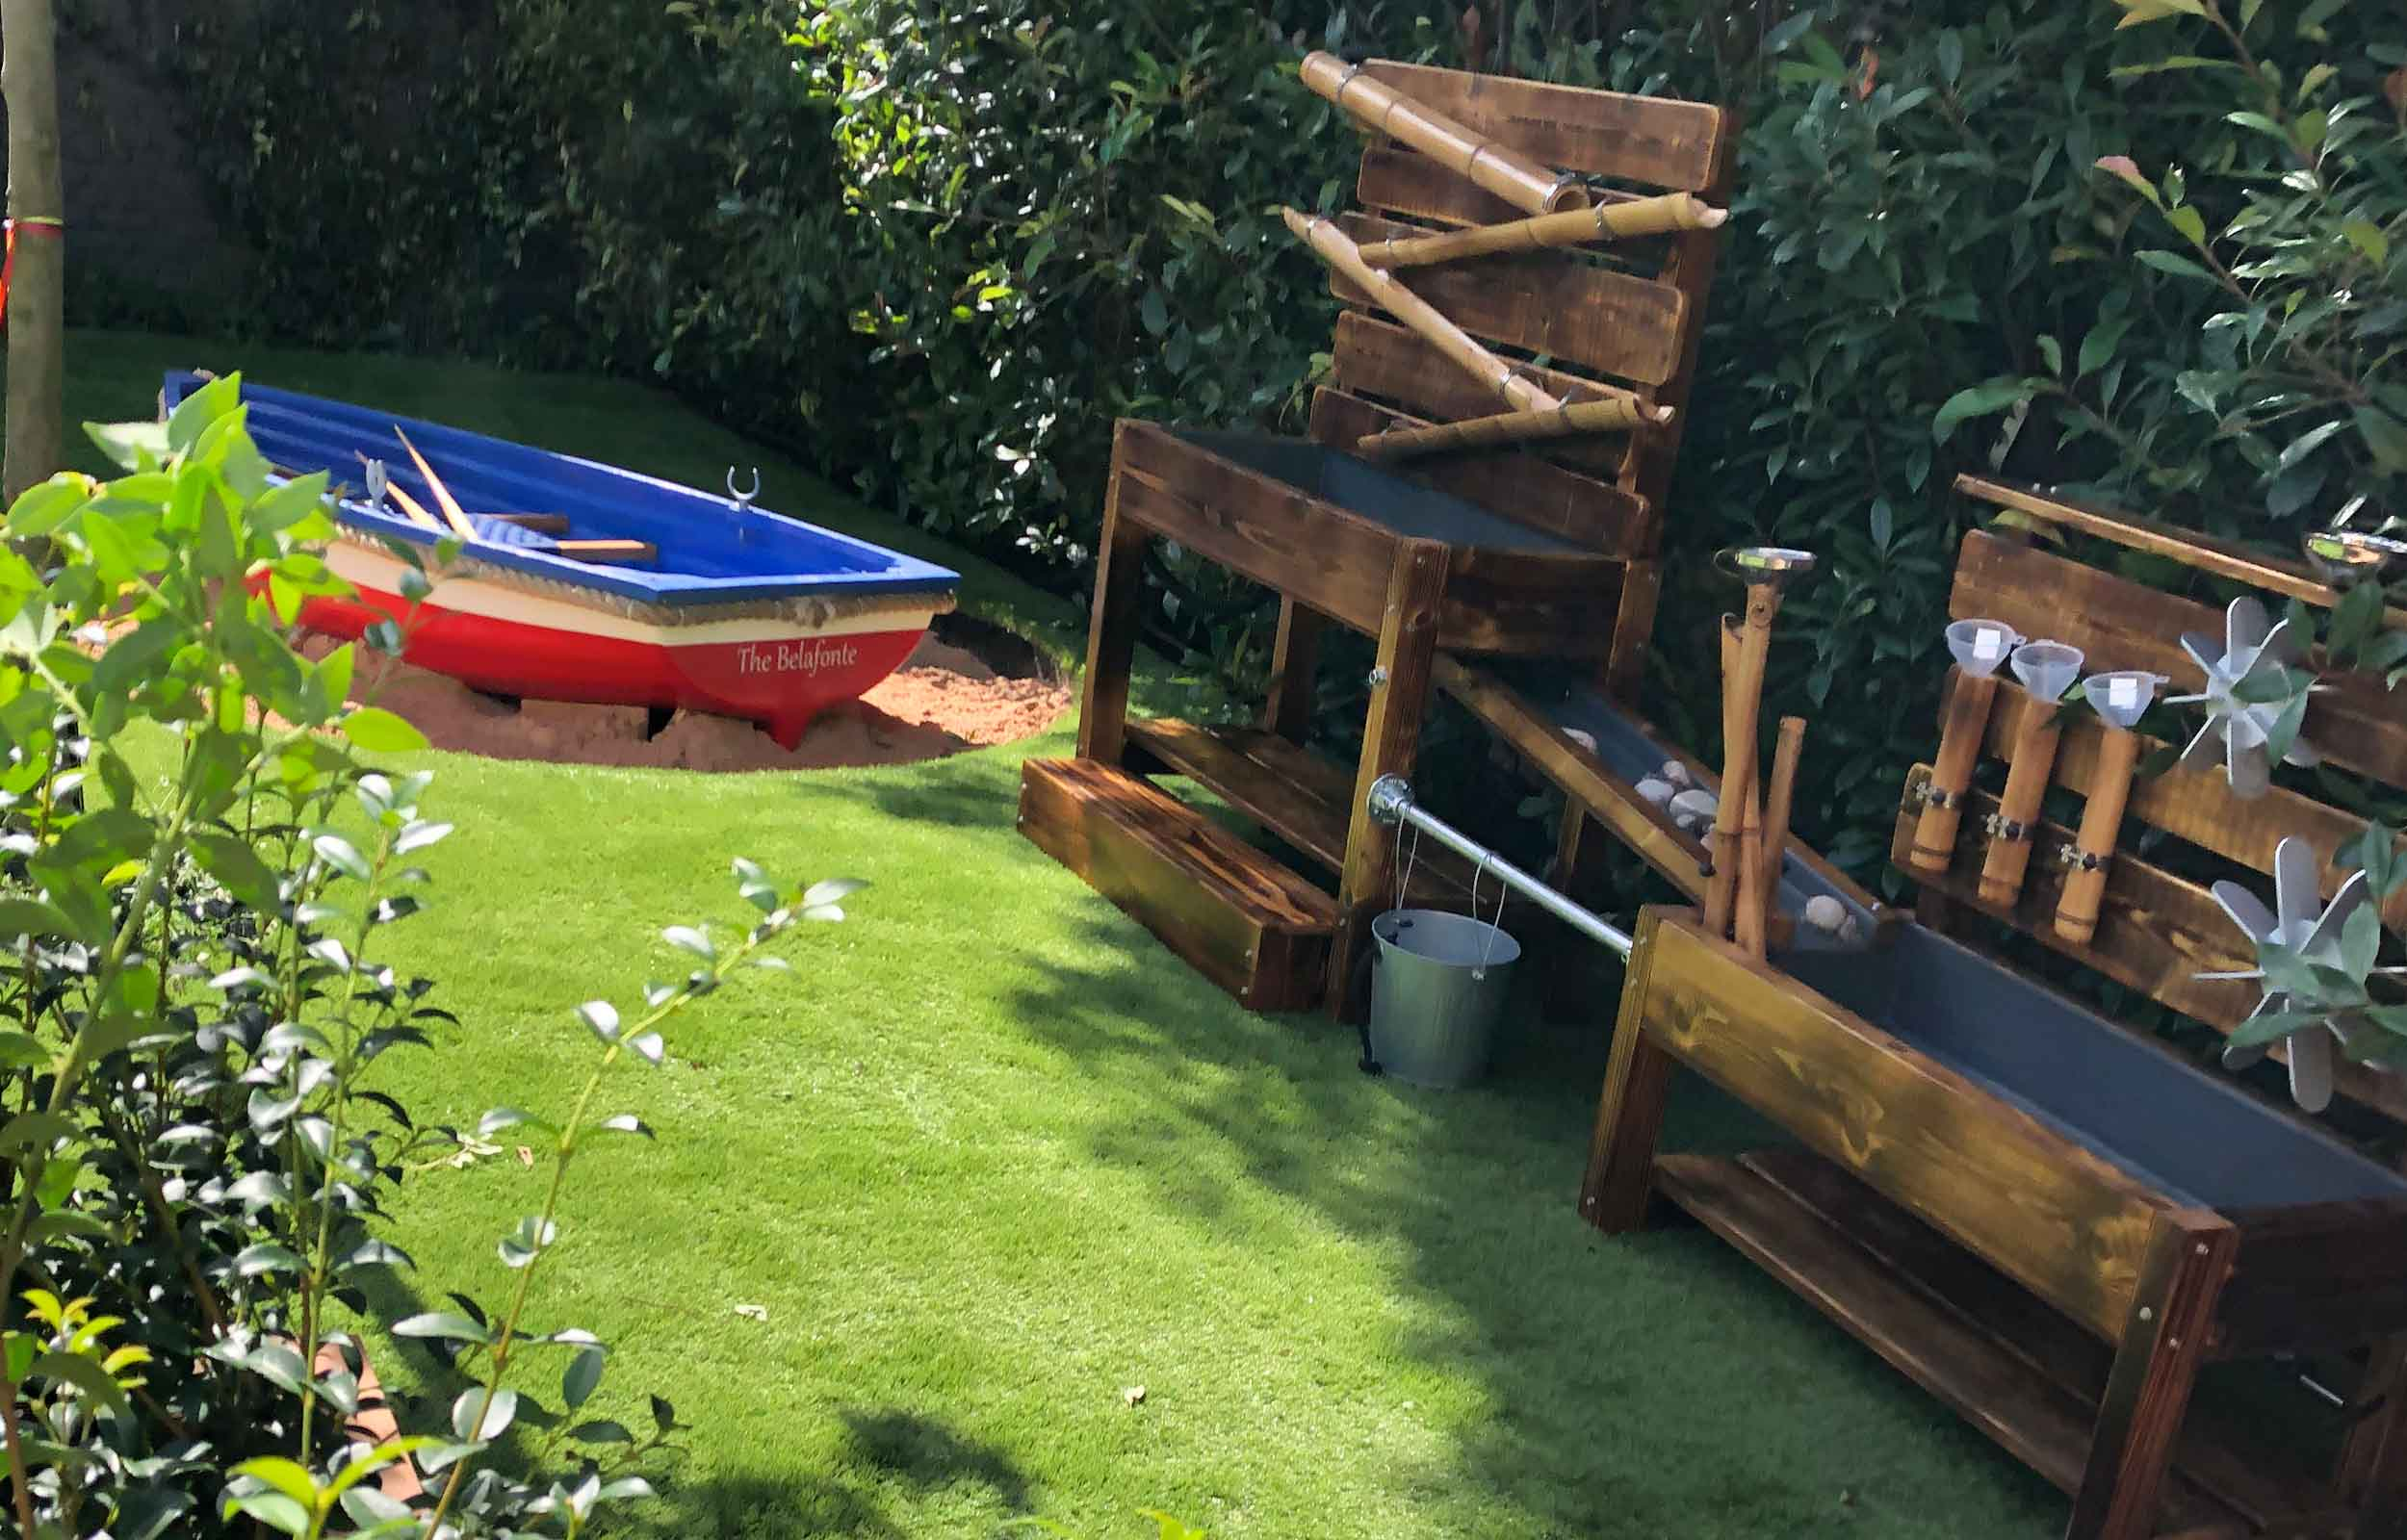 Outdoor Bespoke water play activity tables